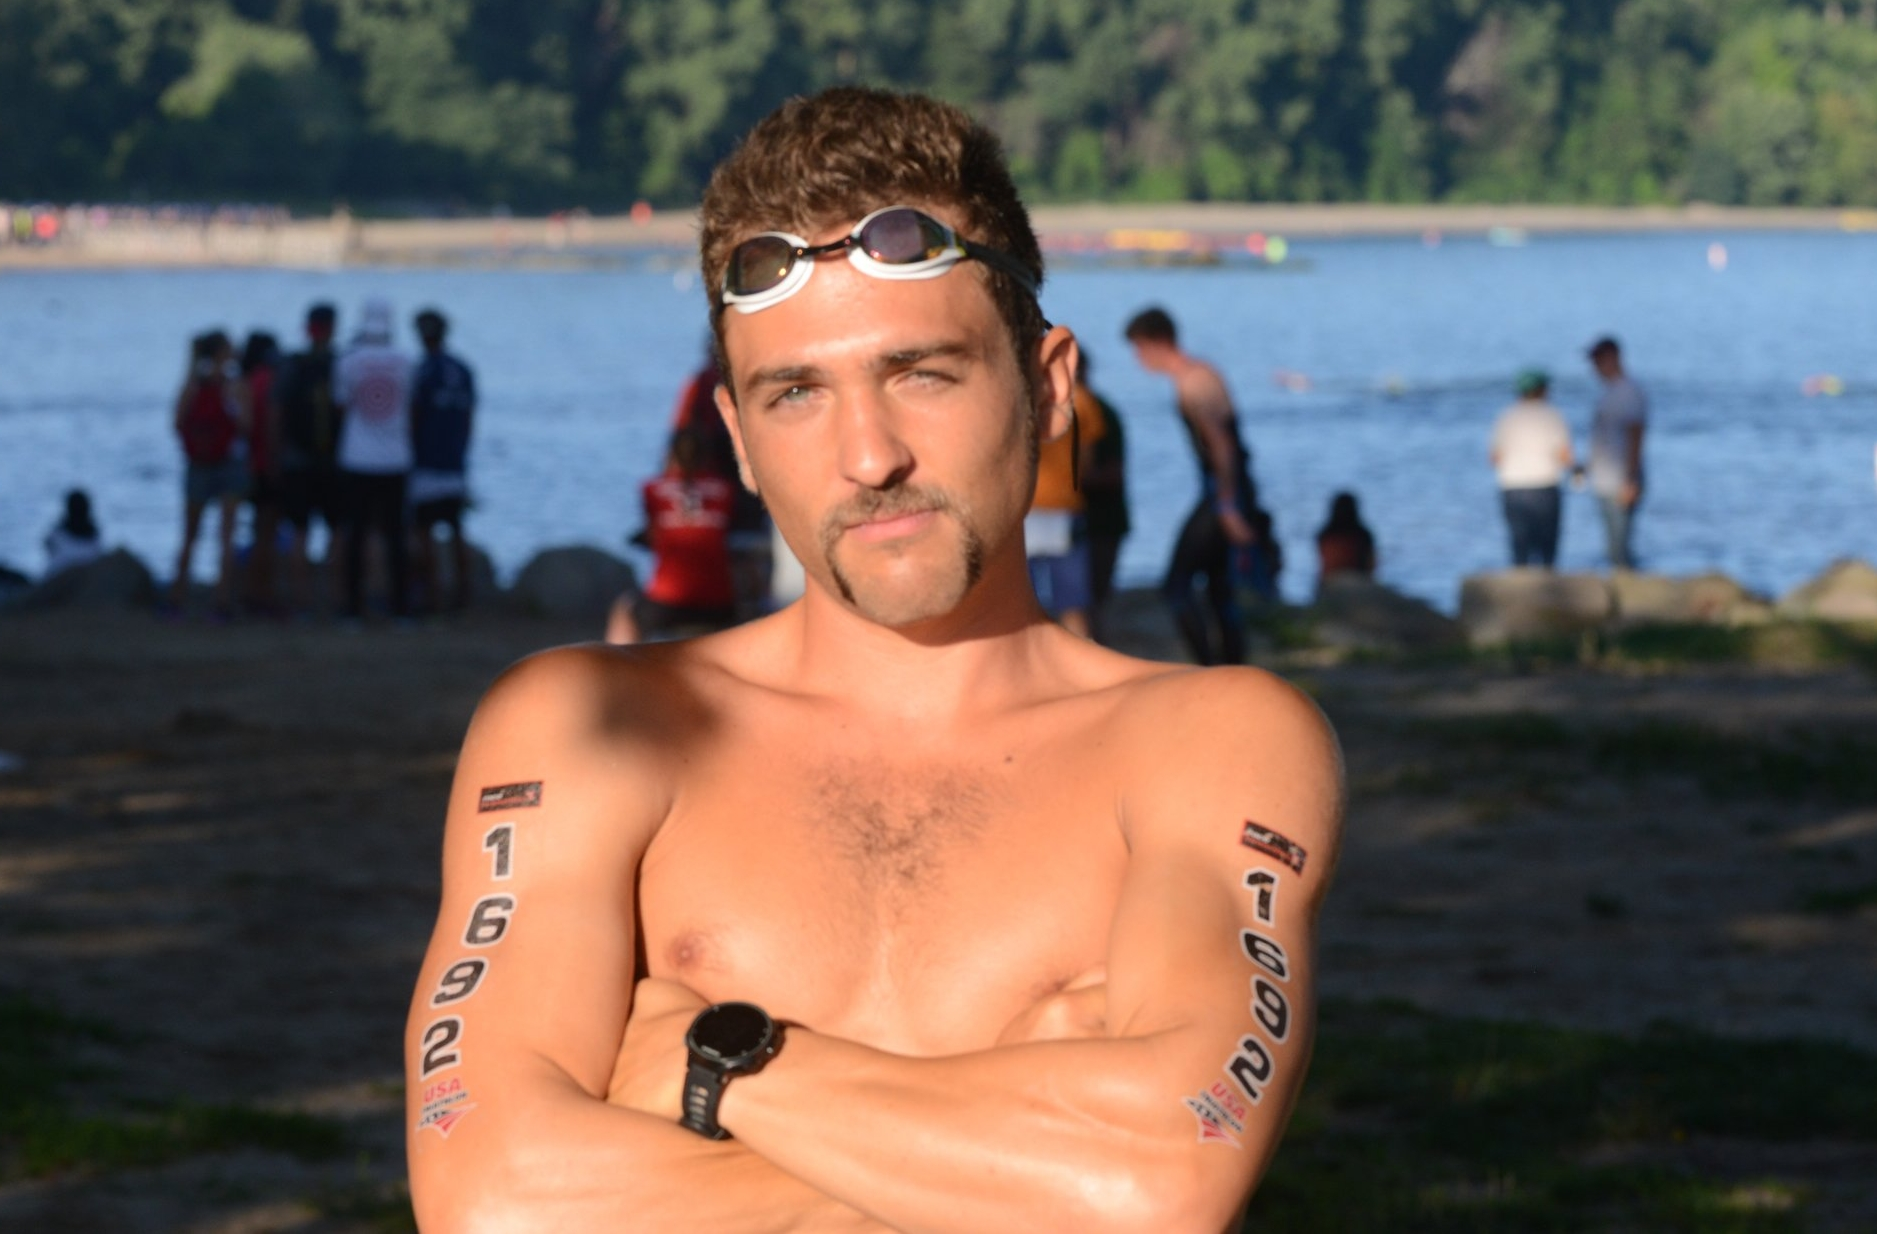 I spent the entire summer perfecting my pre-race game face